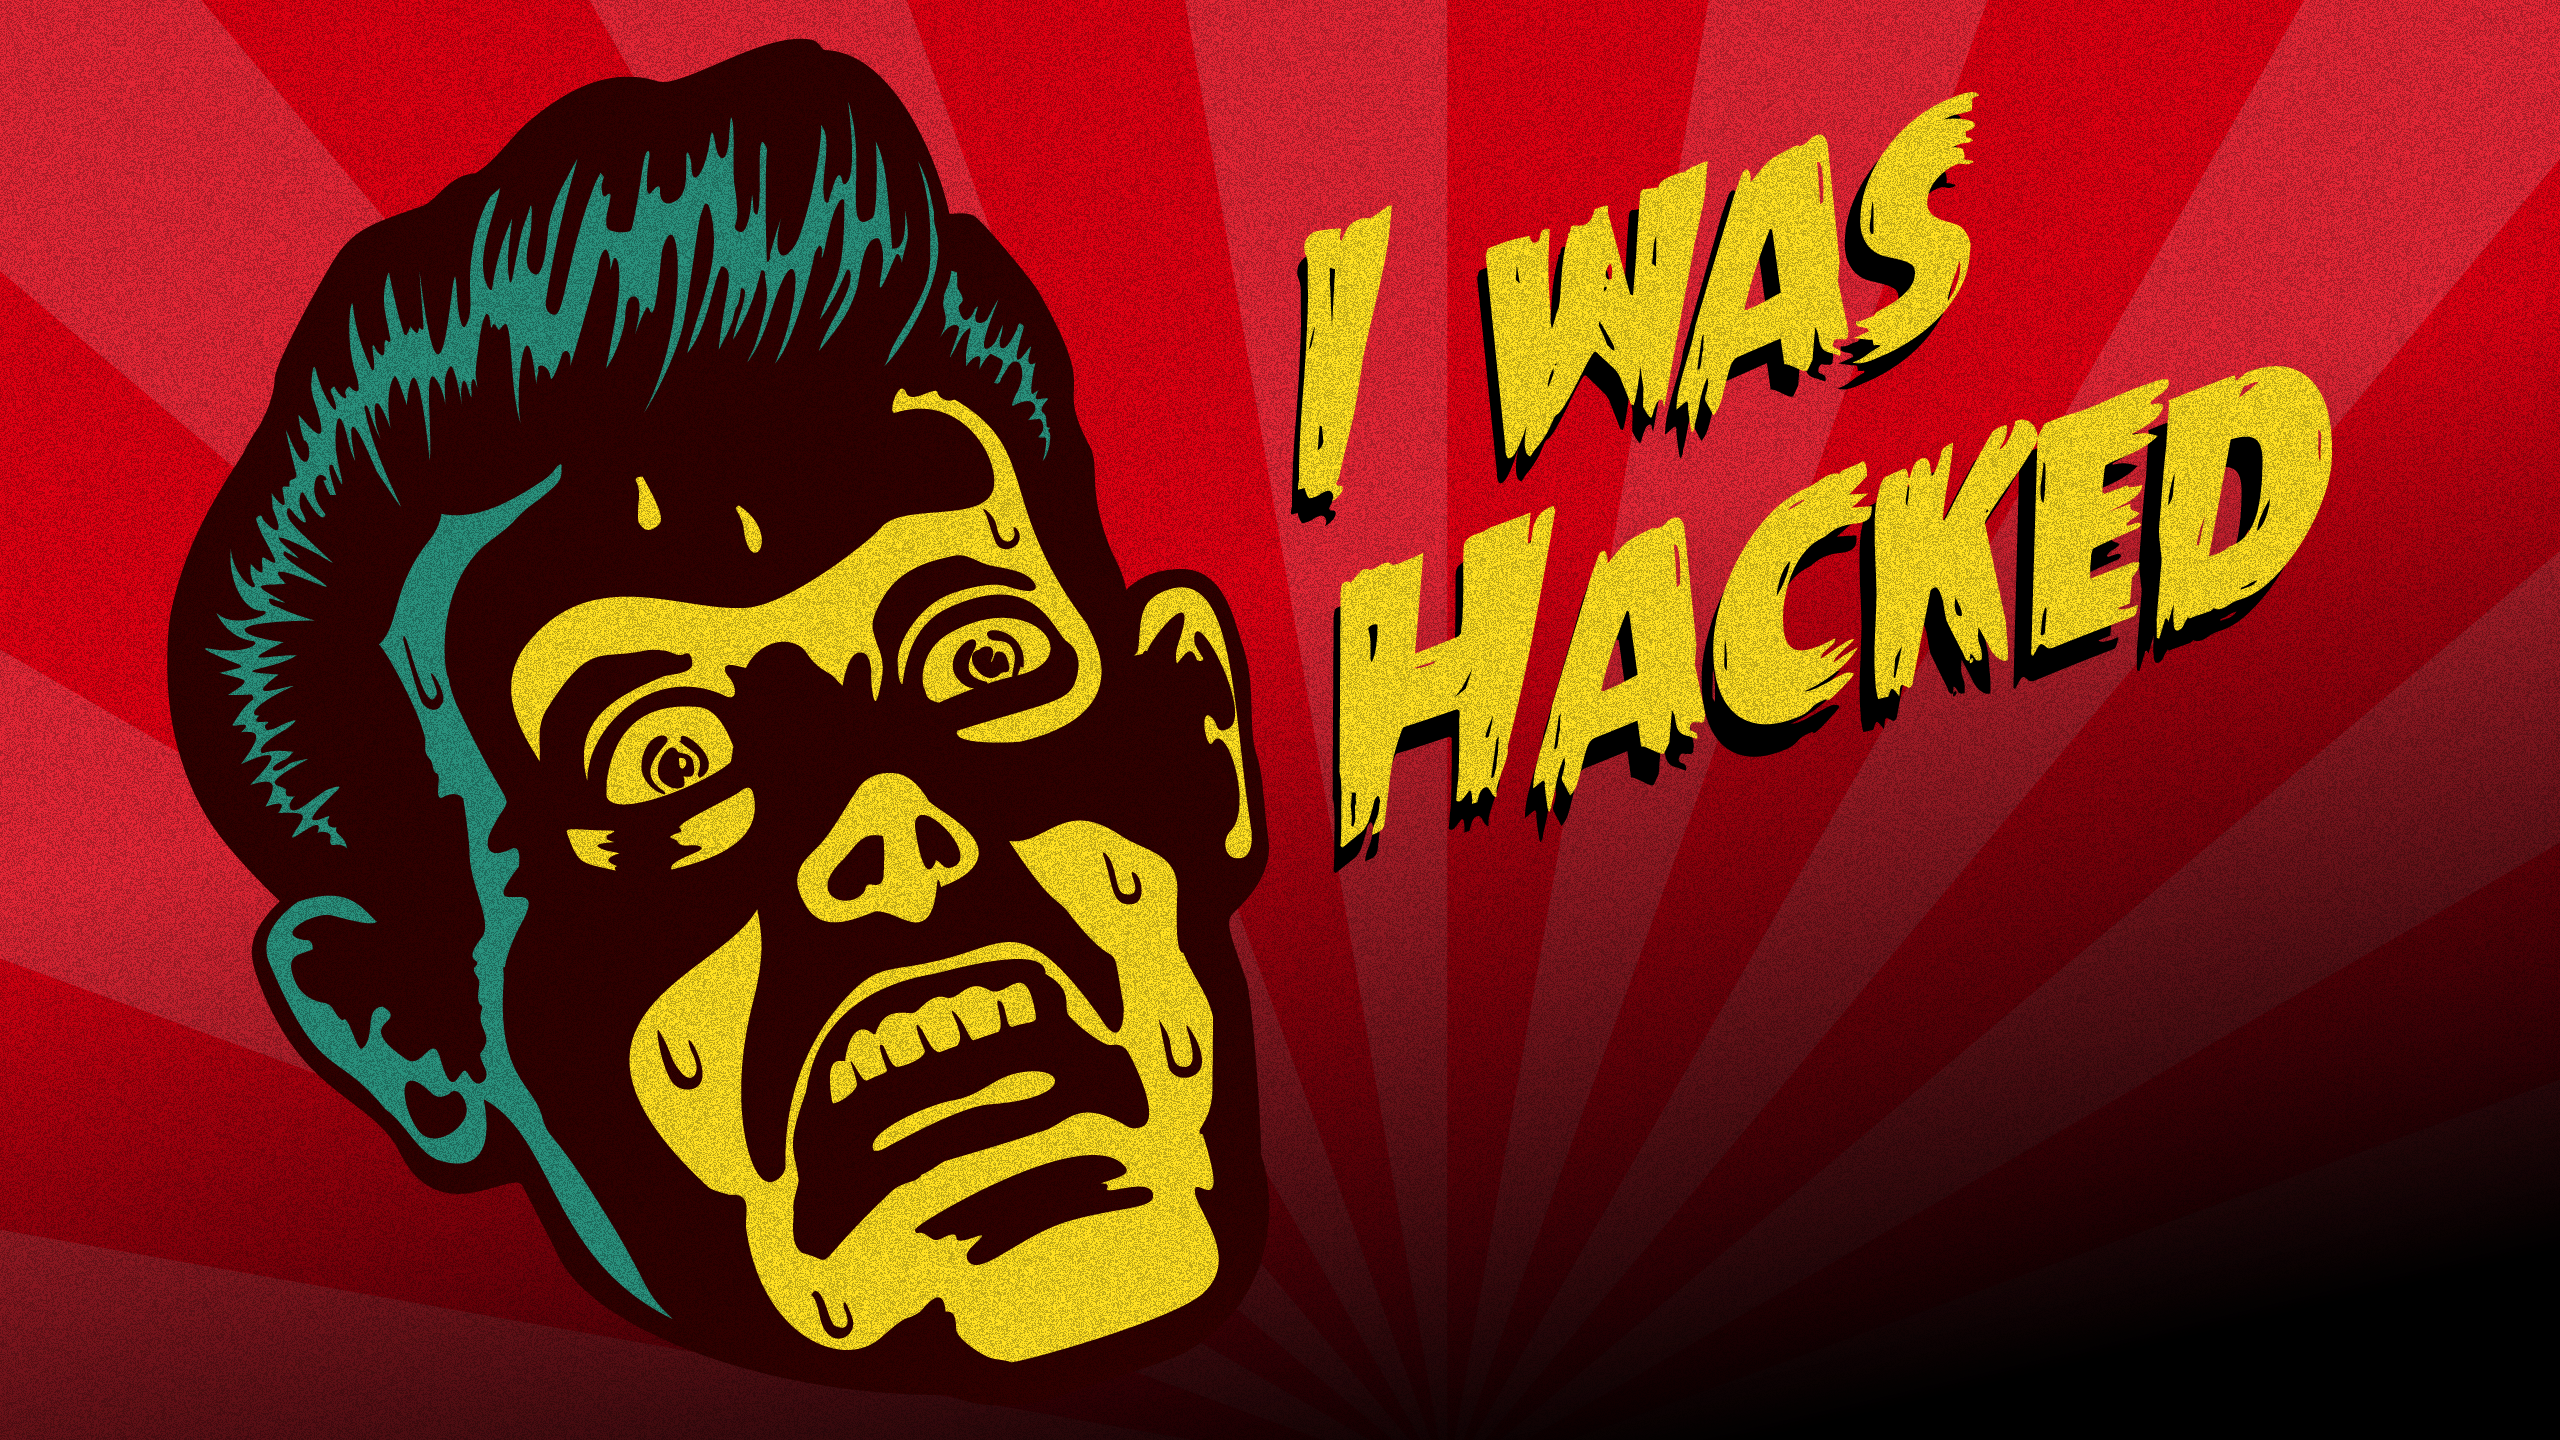 I was hacked | TechCrunch